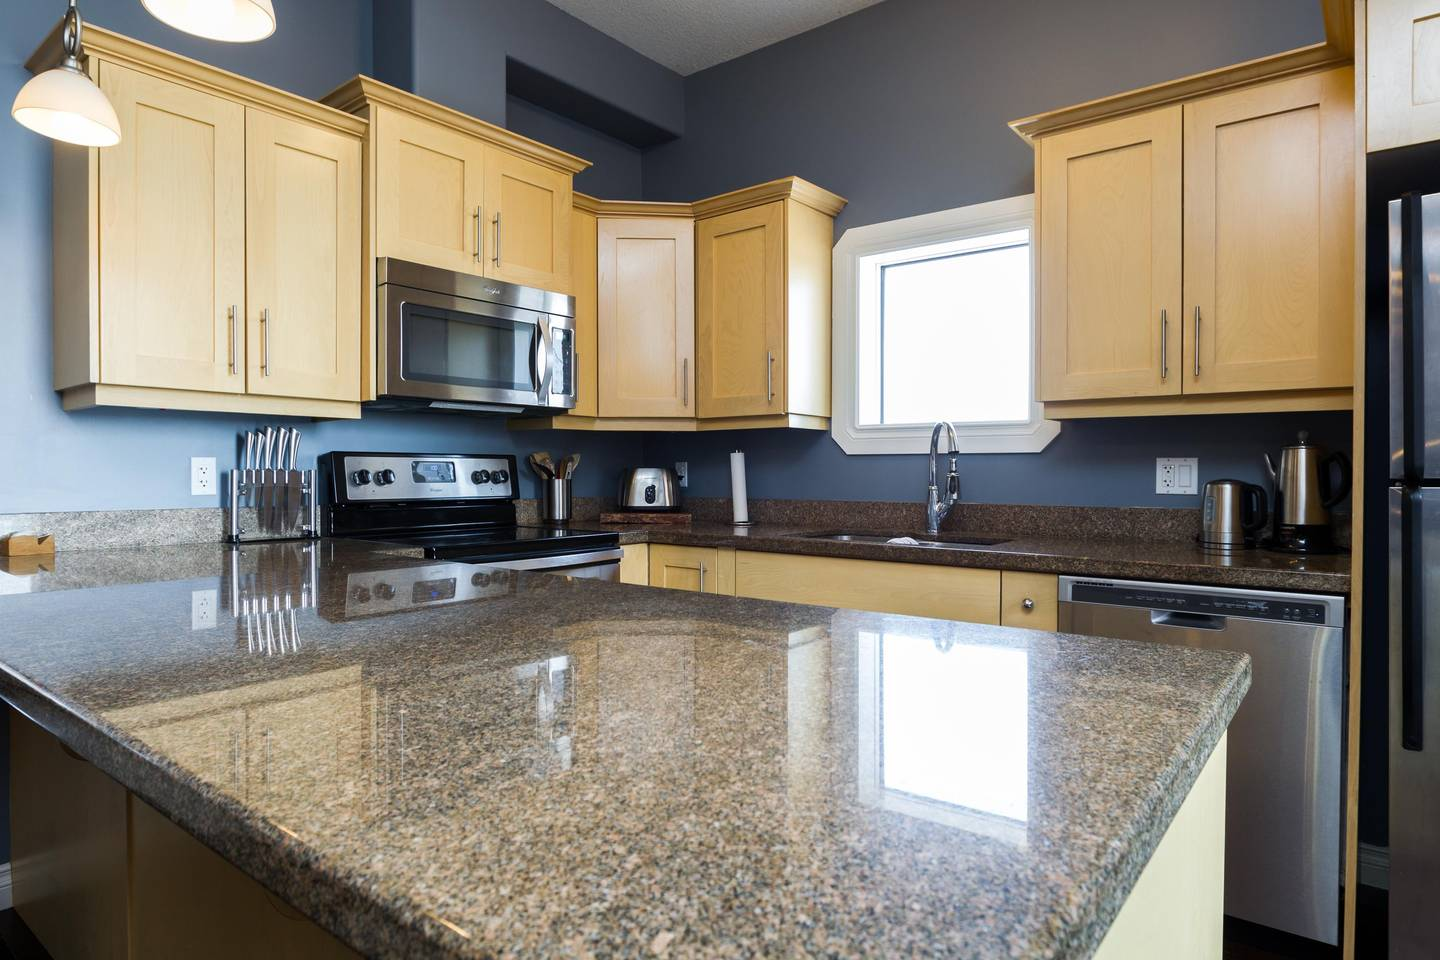 Apartment Luxury  2 Story Condo Near Rogers Place  Downtown photo 25966048